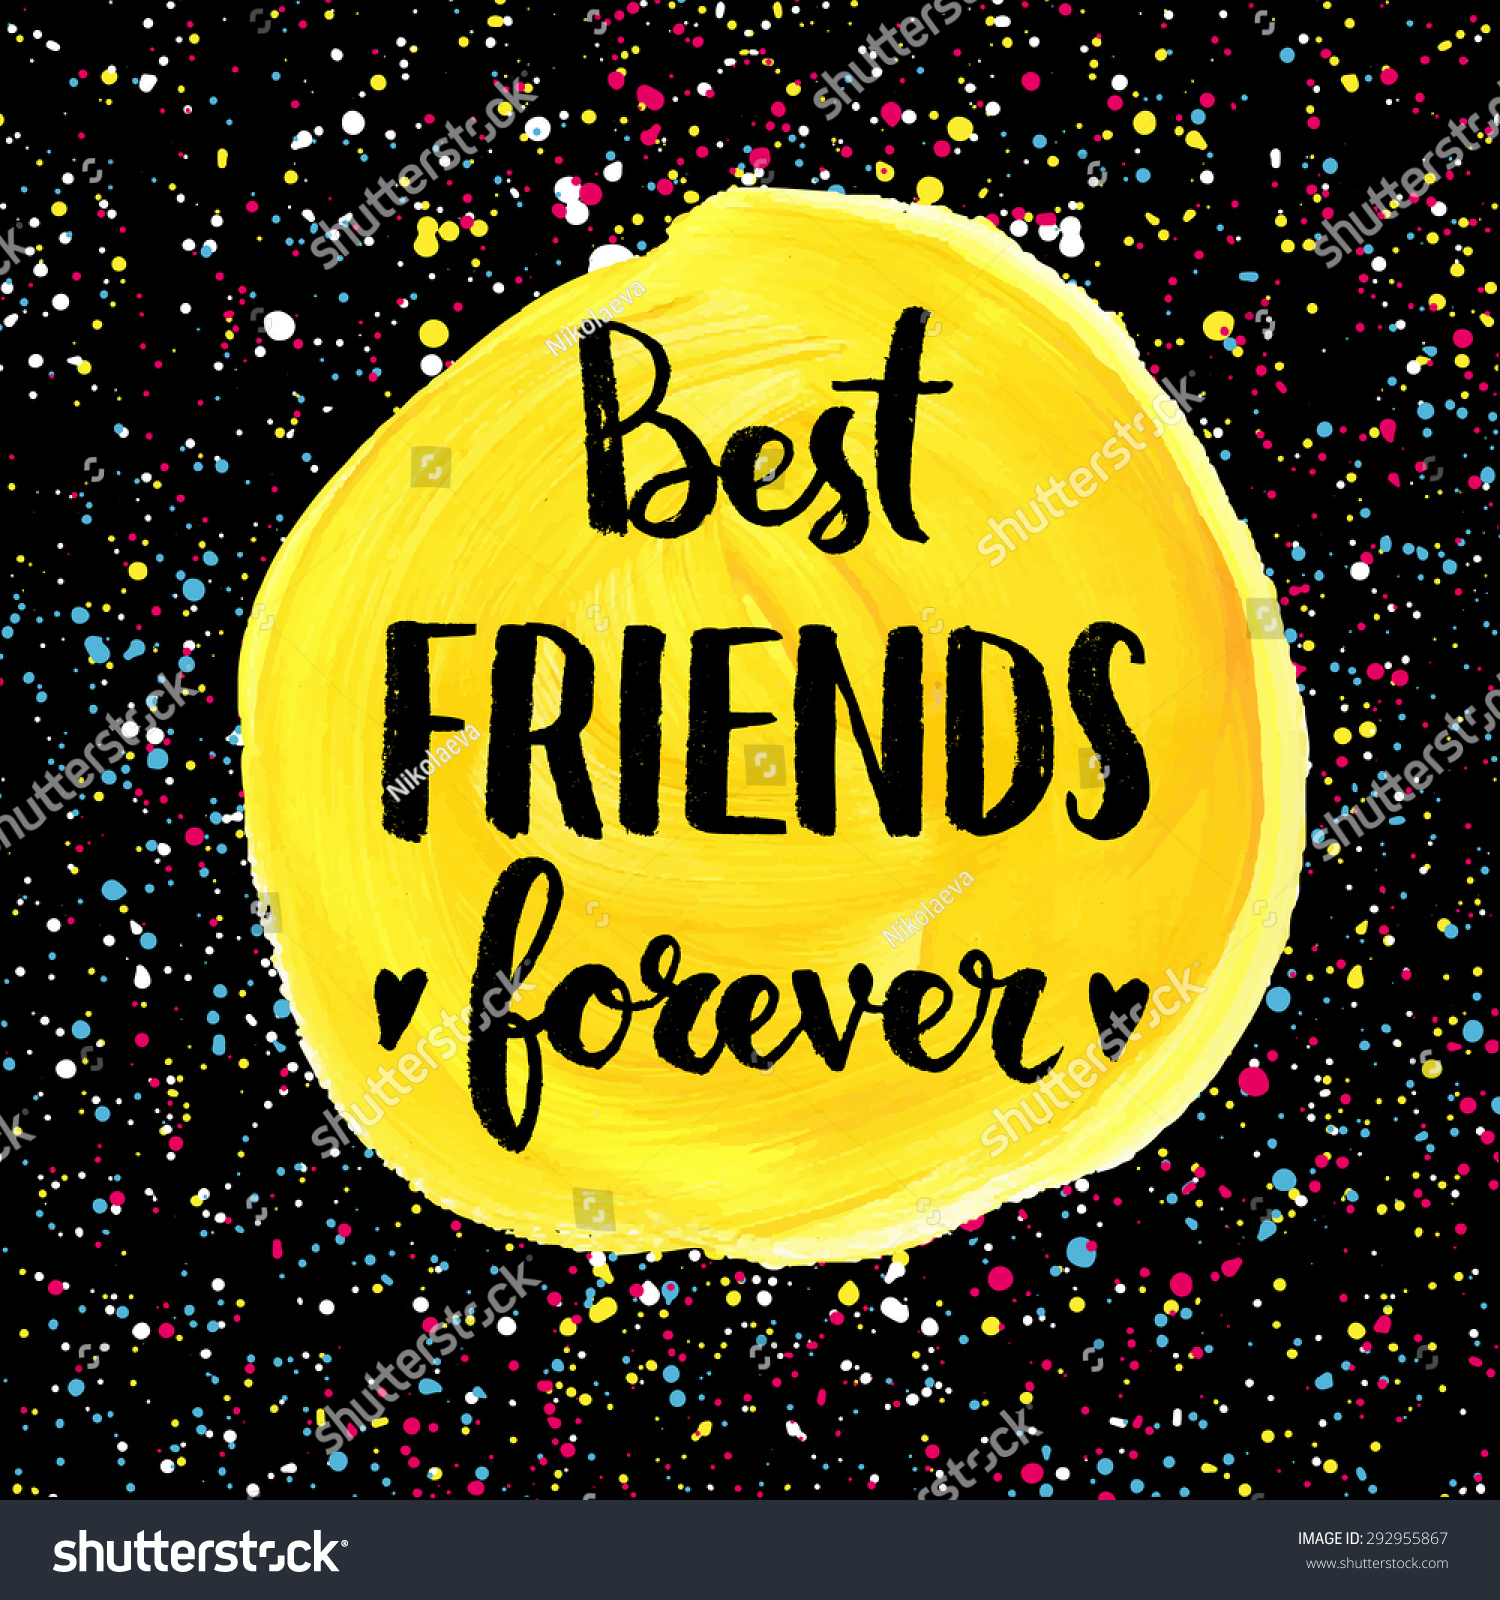 Friends Forever Quotes Best Friends Forever Quotes Layouts Backgrounds Best Friends